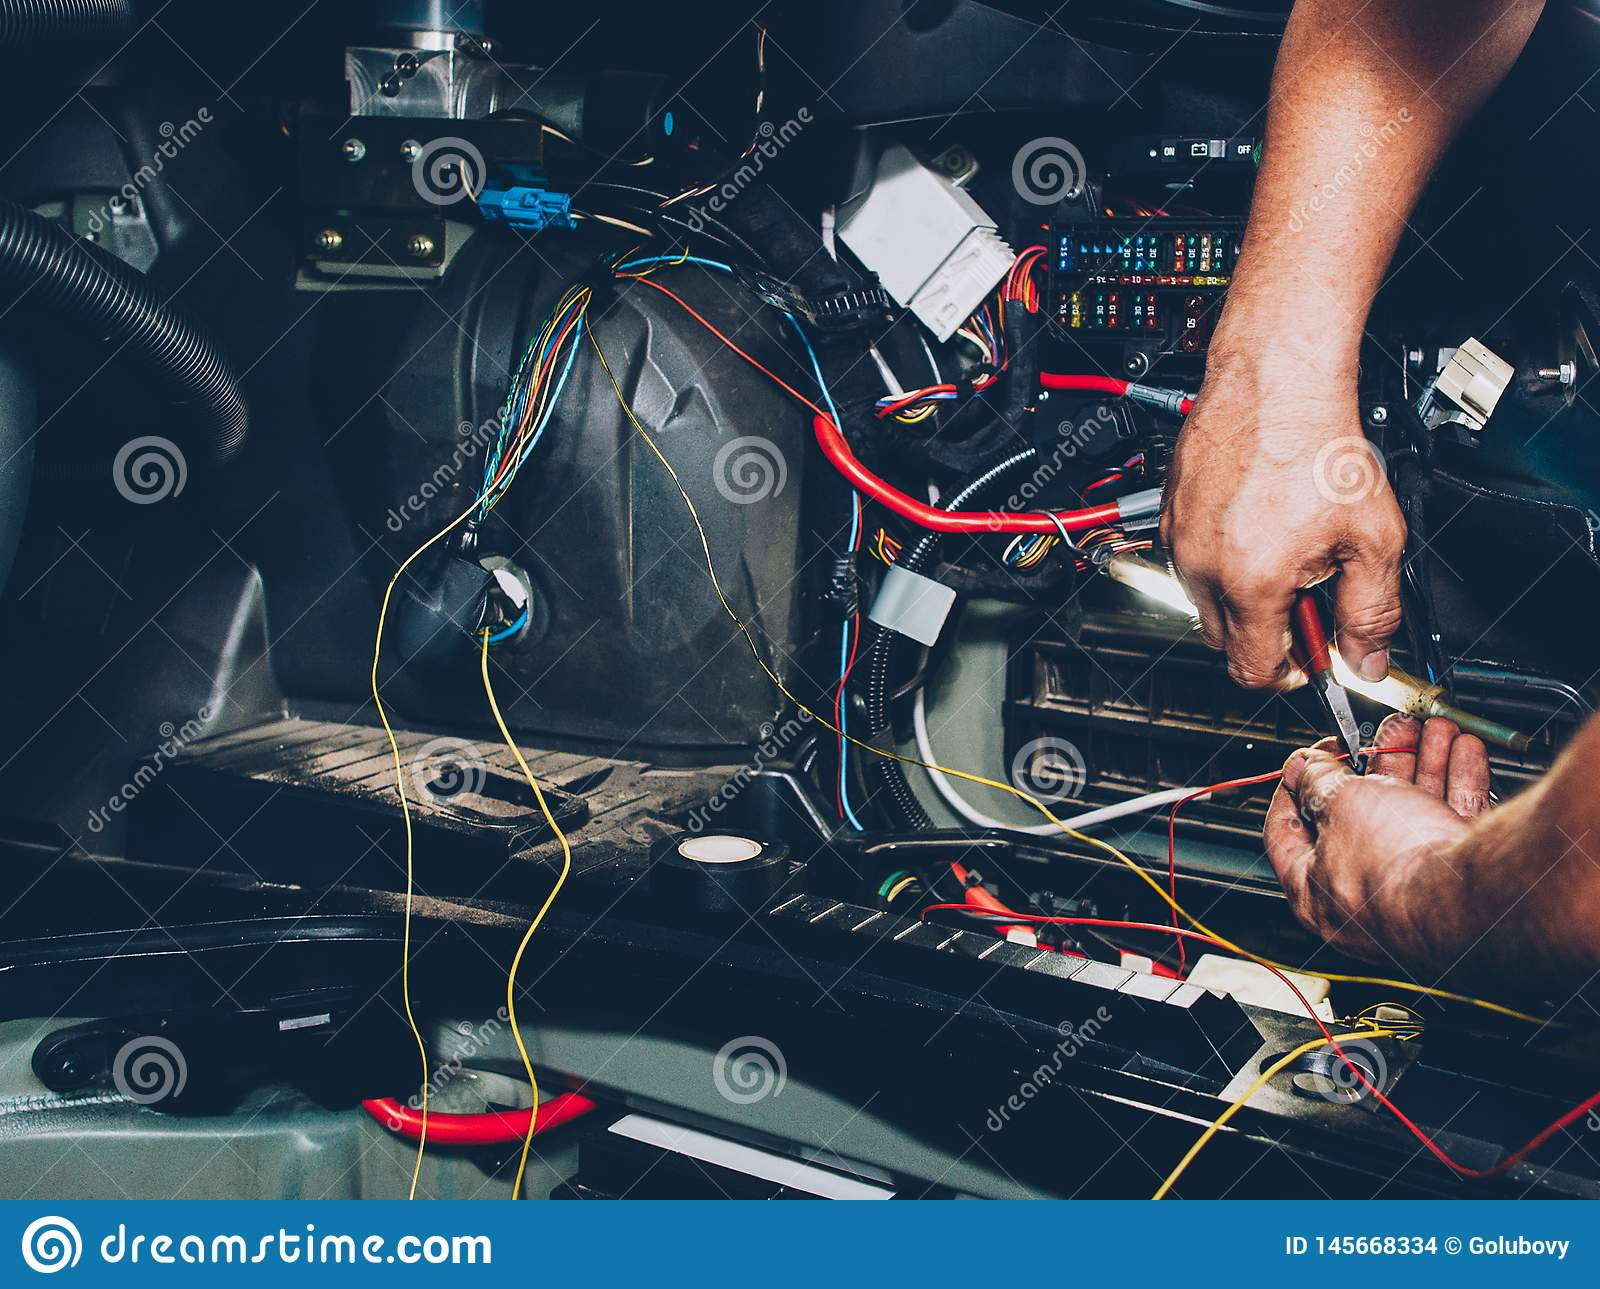 Auto Service Electrician Wiring Car Maintenance Stock Photo ... on